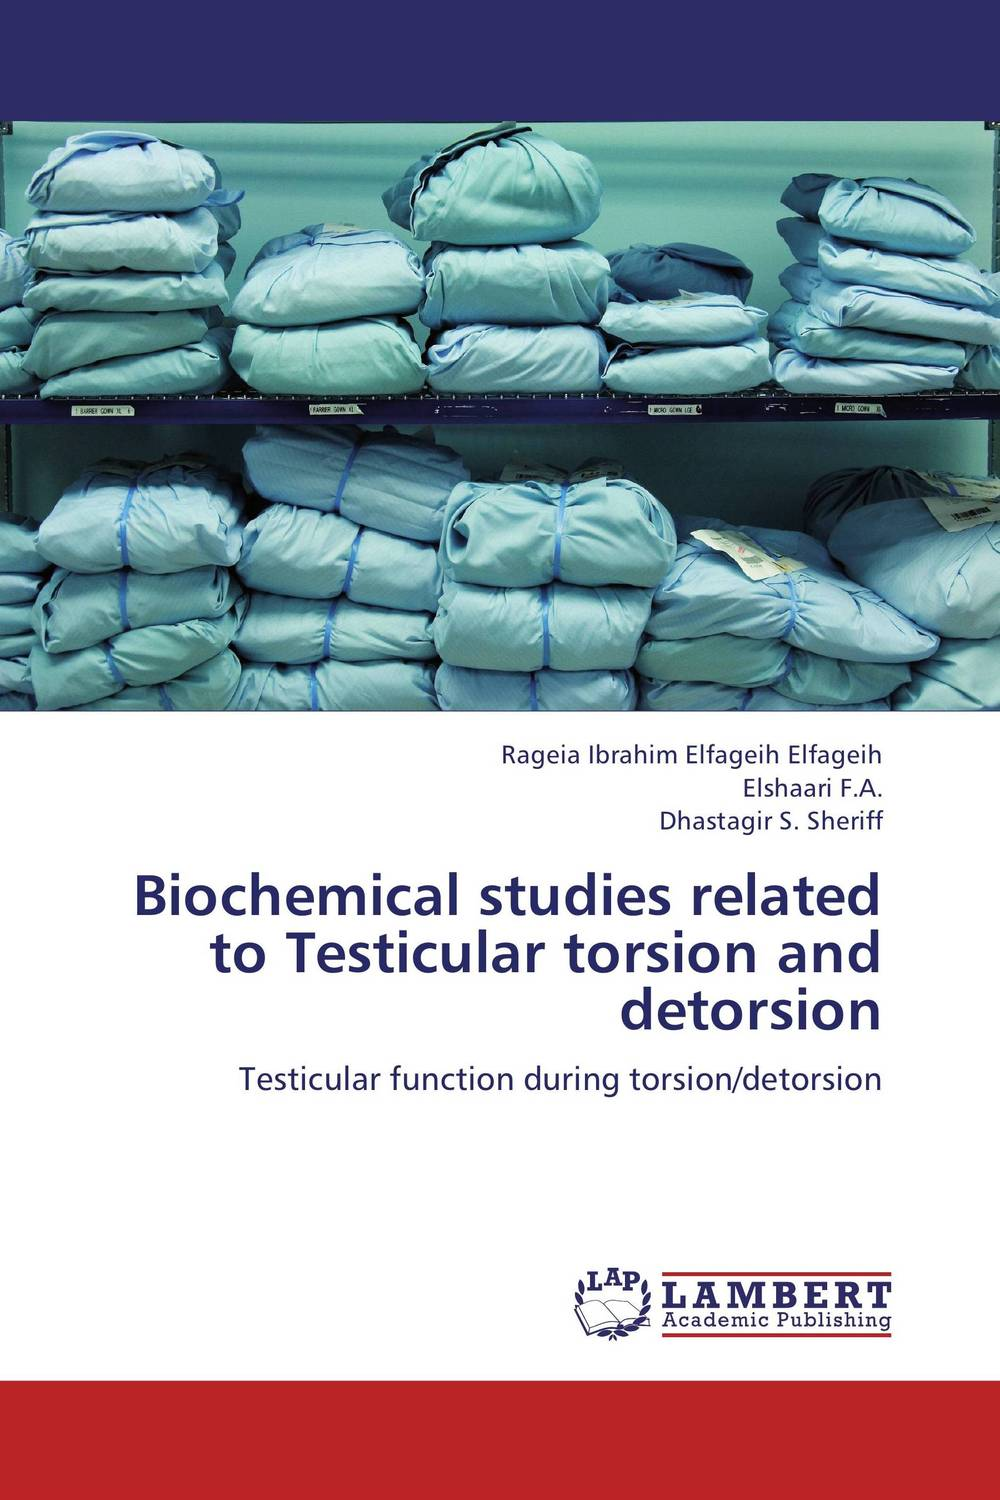 Biochemical studies related to Testicular torsion and detorsion psychiatric disorders in postpartum period